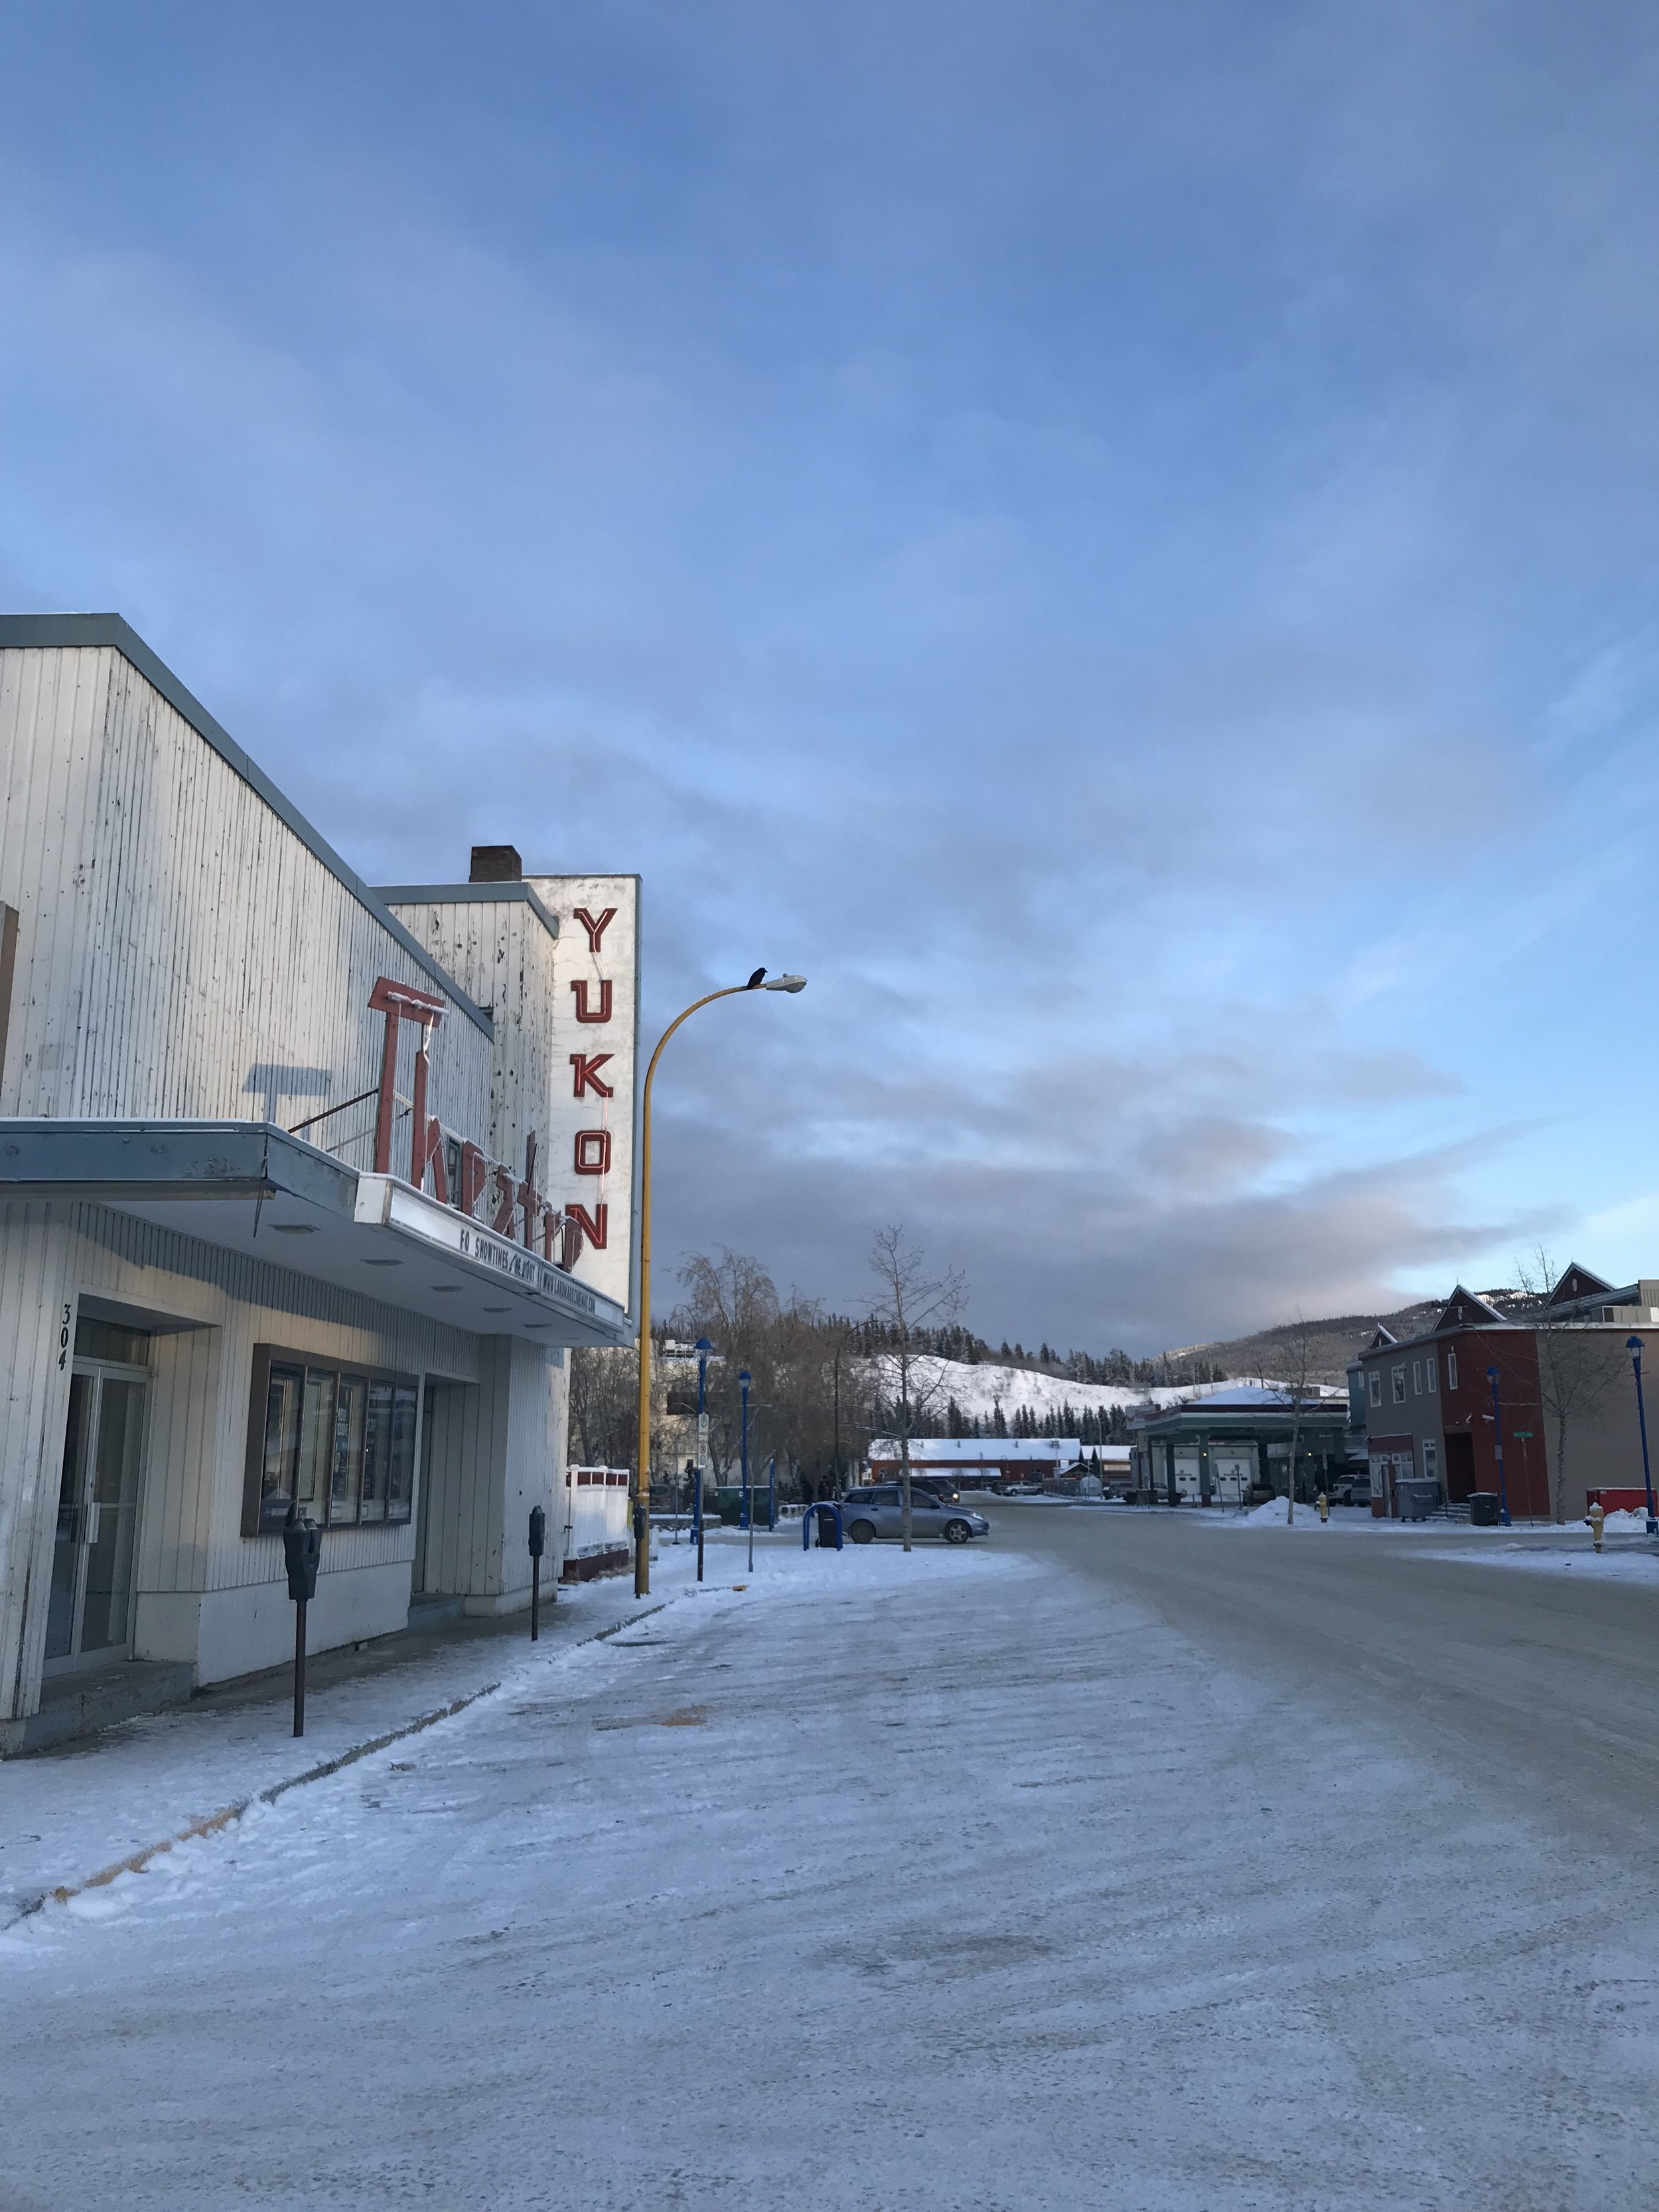 Always have to stop and admire the Yukon Theatre…